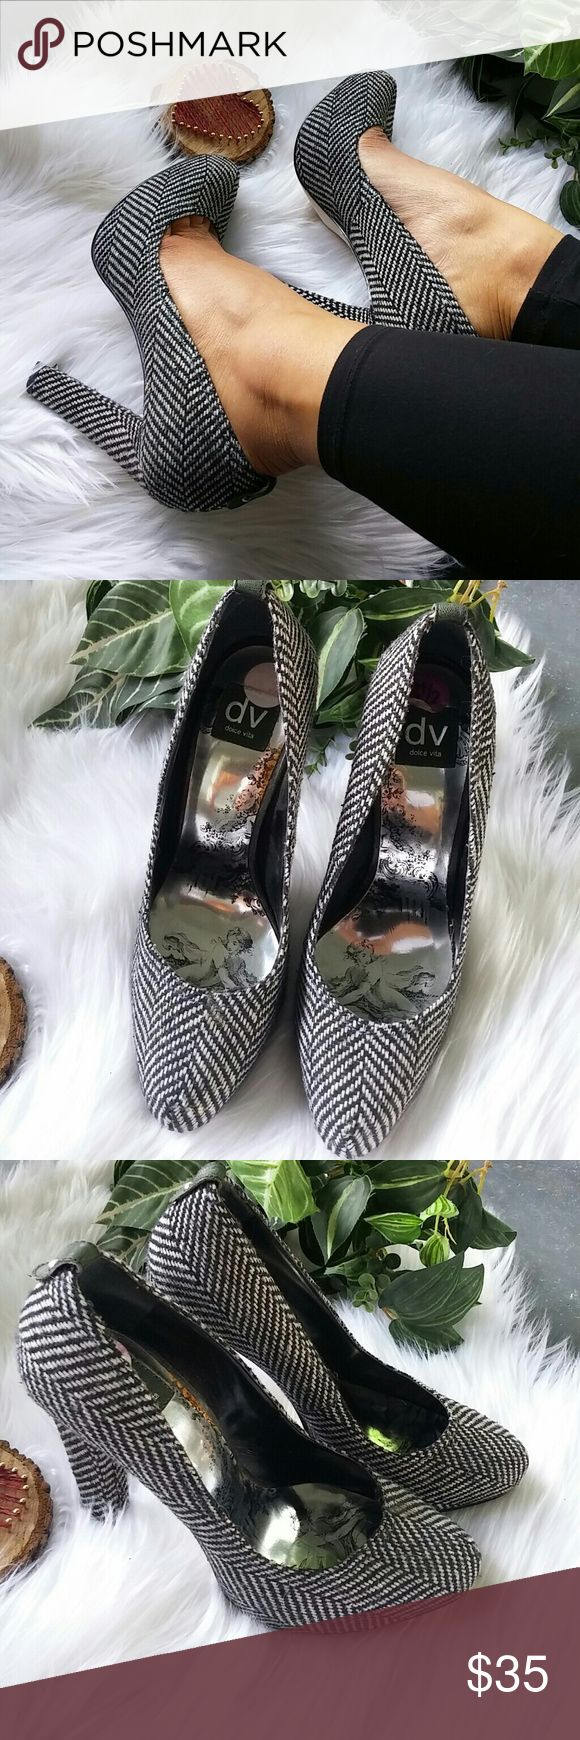 Dolce Vita black and white tweed high heels He's are beautiful pair of Dolce Vita ain't half black and white tweed high heels brand new Warren off tag never worn size 8 1/2 Dolce Vita Shoes Heels